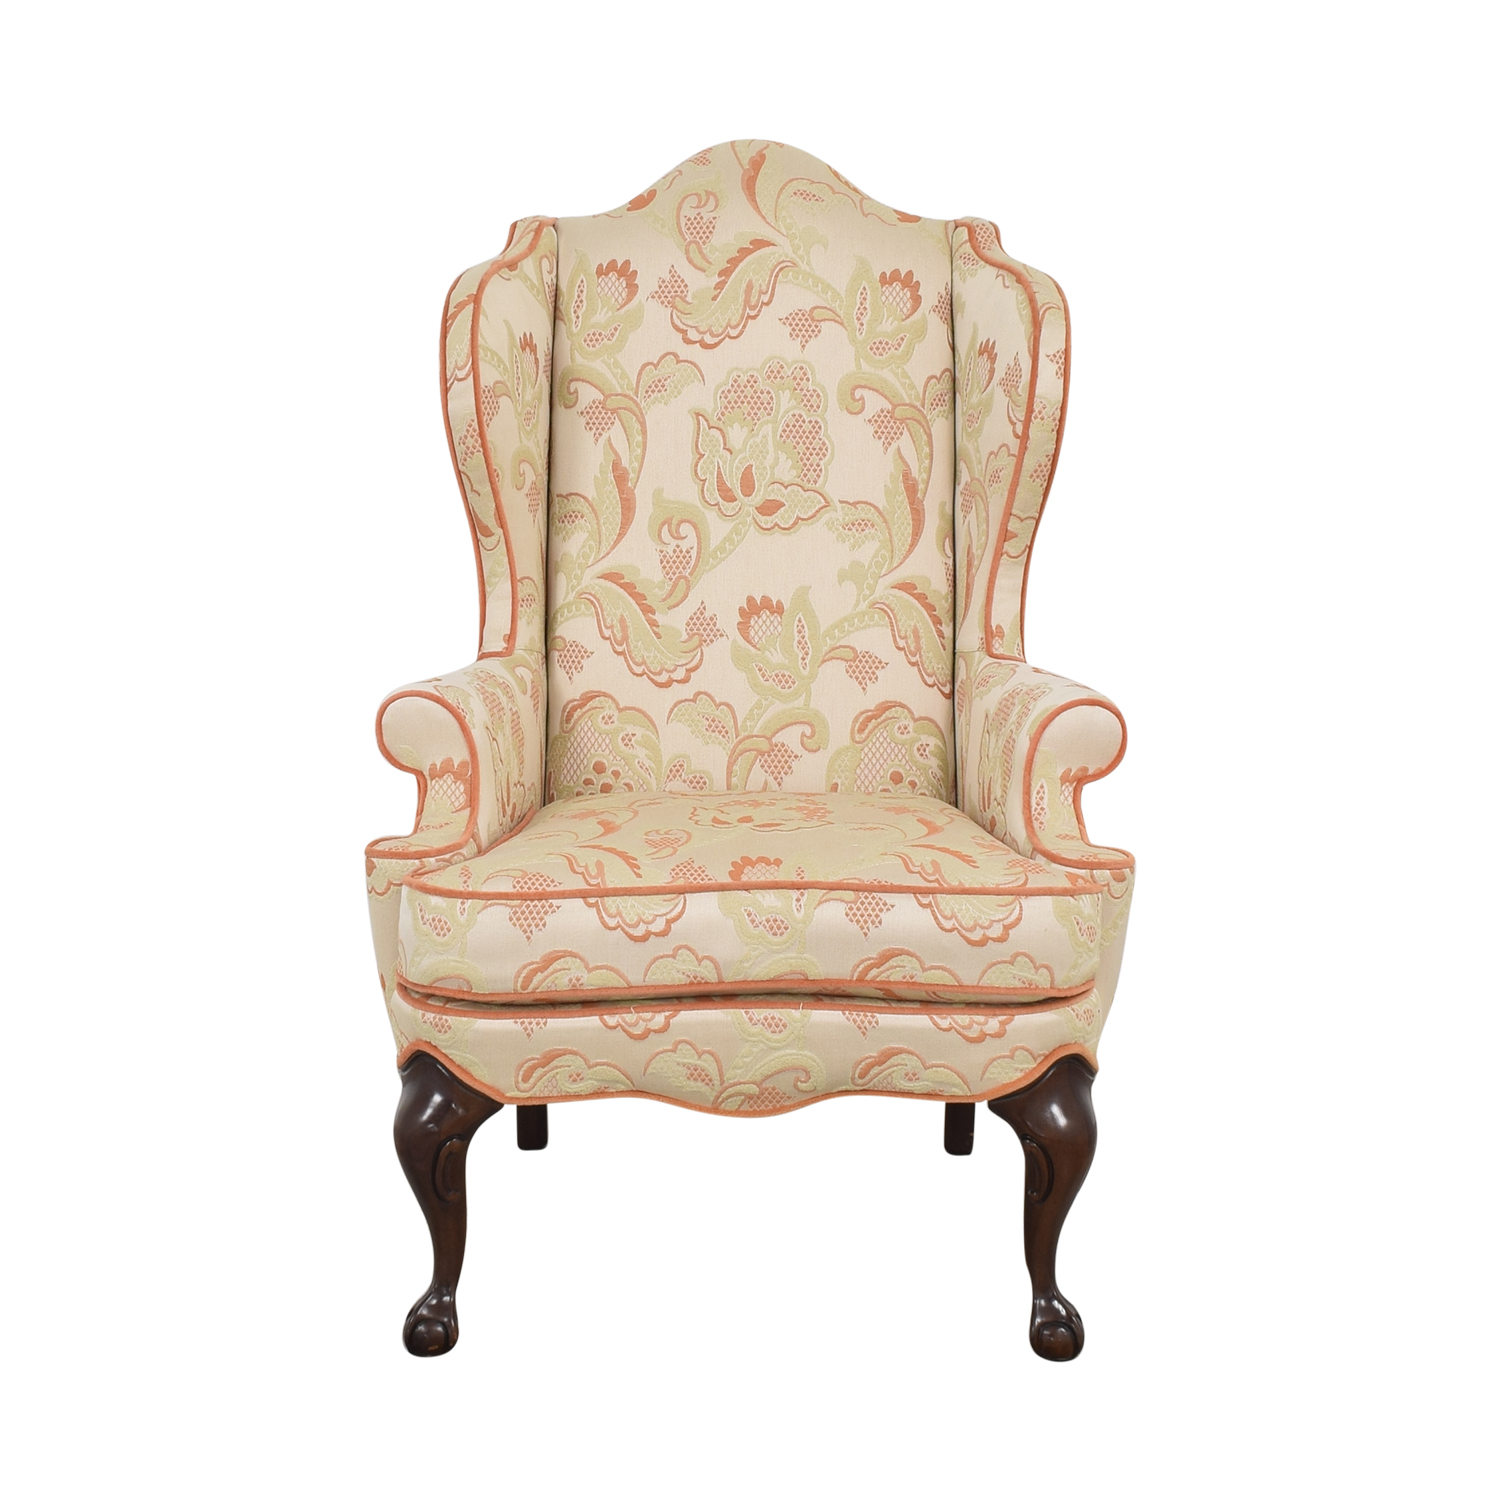 shop Macy's Upholstered Wingback Chair Macy's